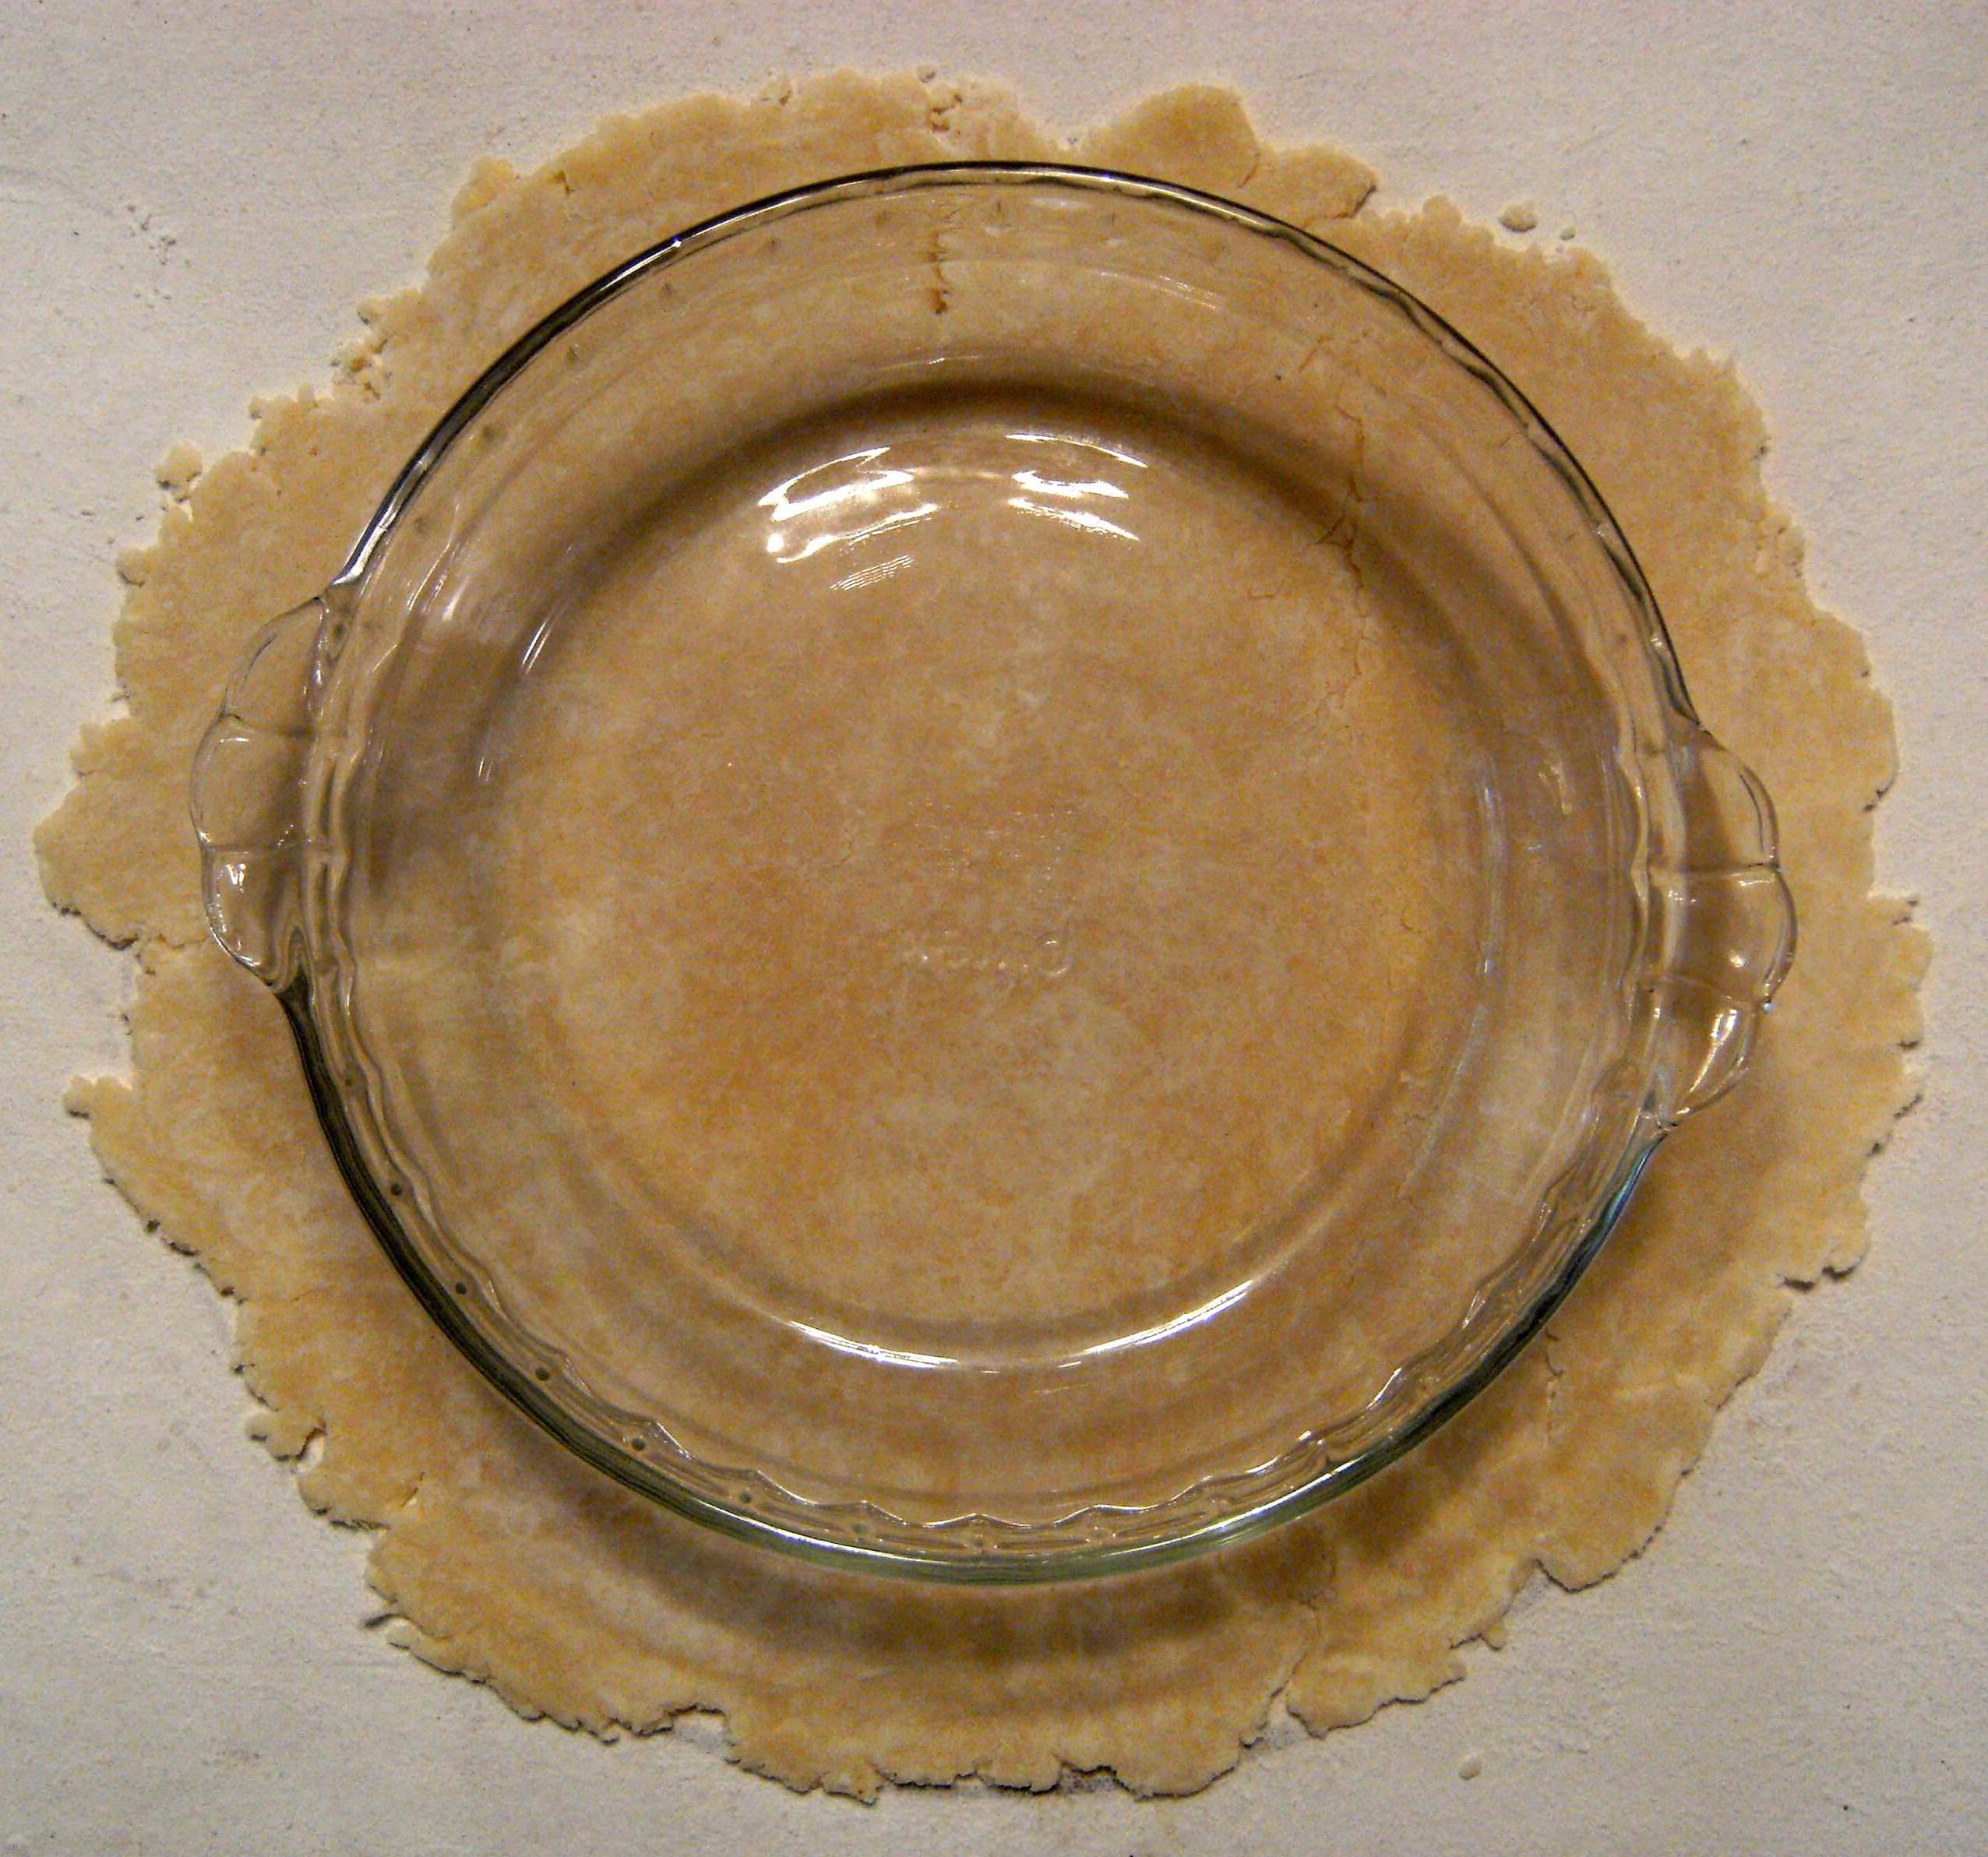 how to make homemade pie crust - step 18